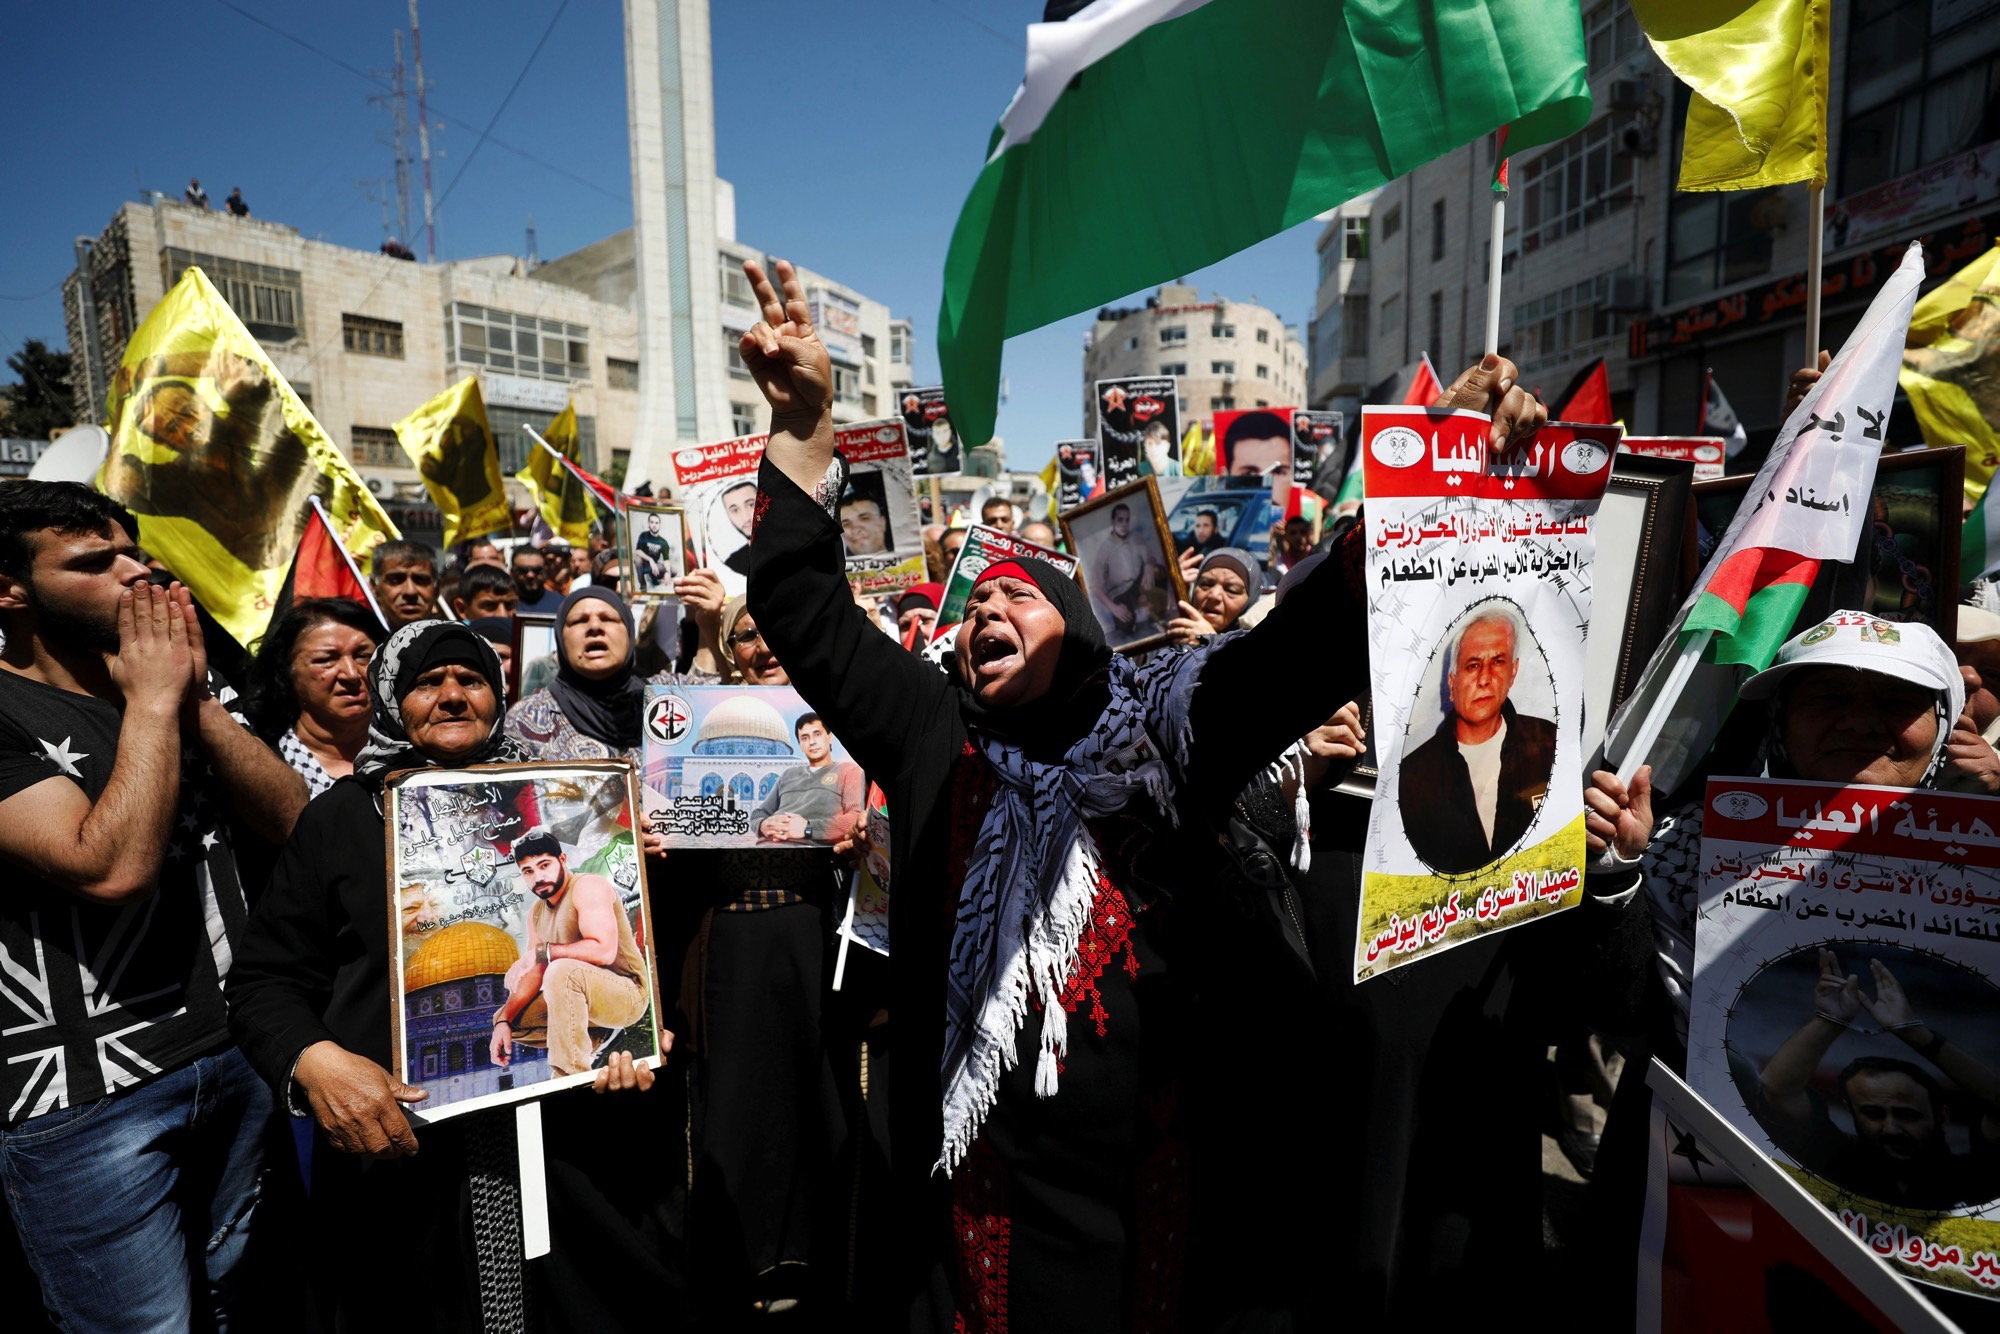 Demonstrators take part in a rally in support of Palestinian prisoners on hunger strike in Israeli jails, in the West Bank city of Ramallah April 17, 2017. Credit: Reuters/Mohamad Torokman